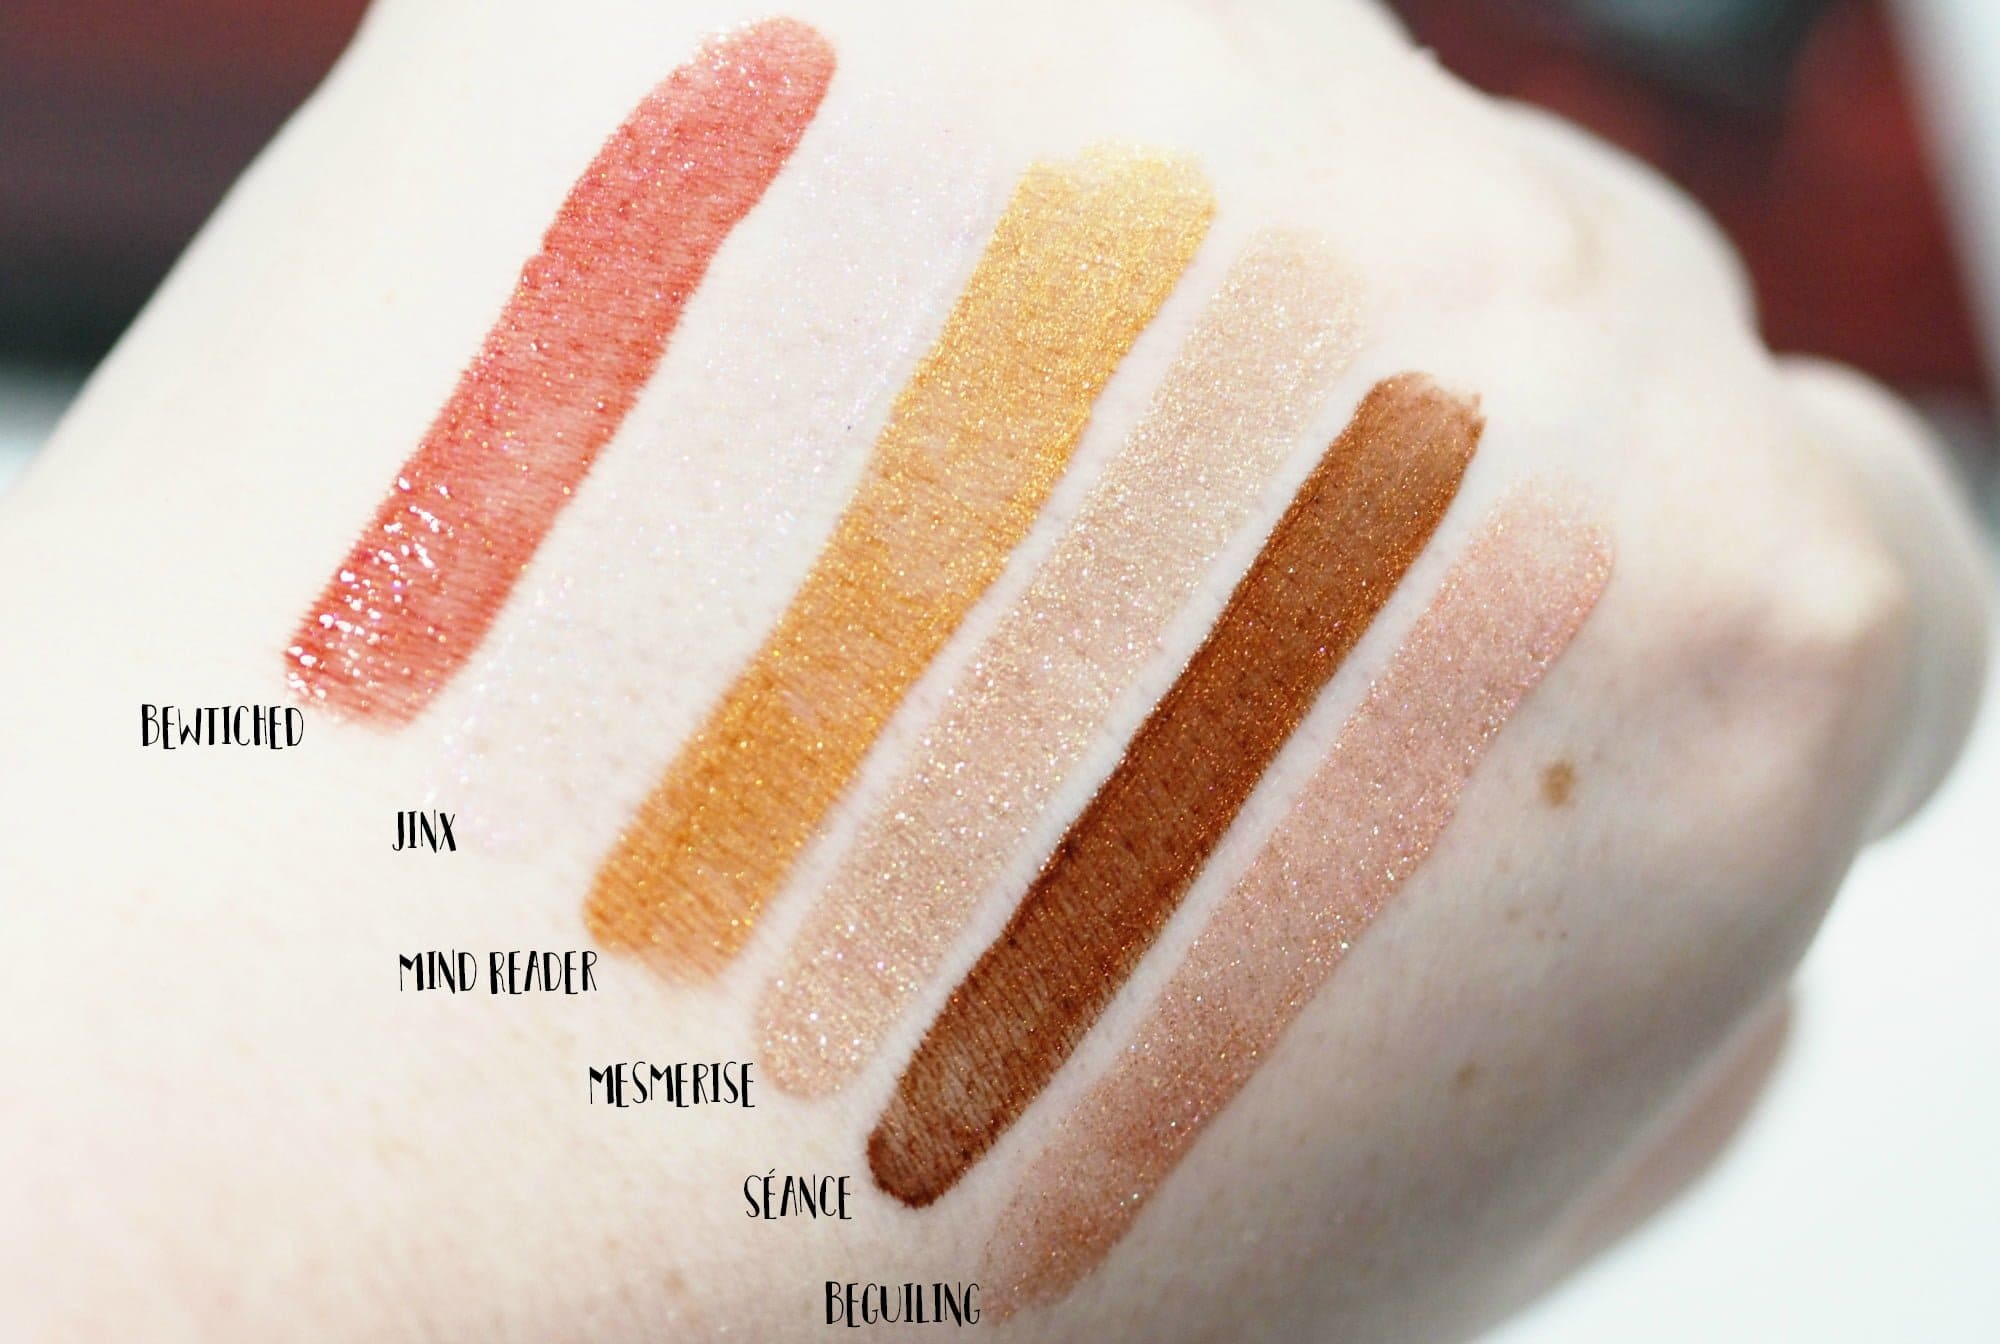 Morphe Molten Magic Lip Gloss Set Review and Swatches